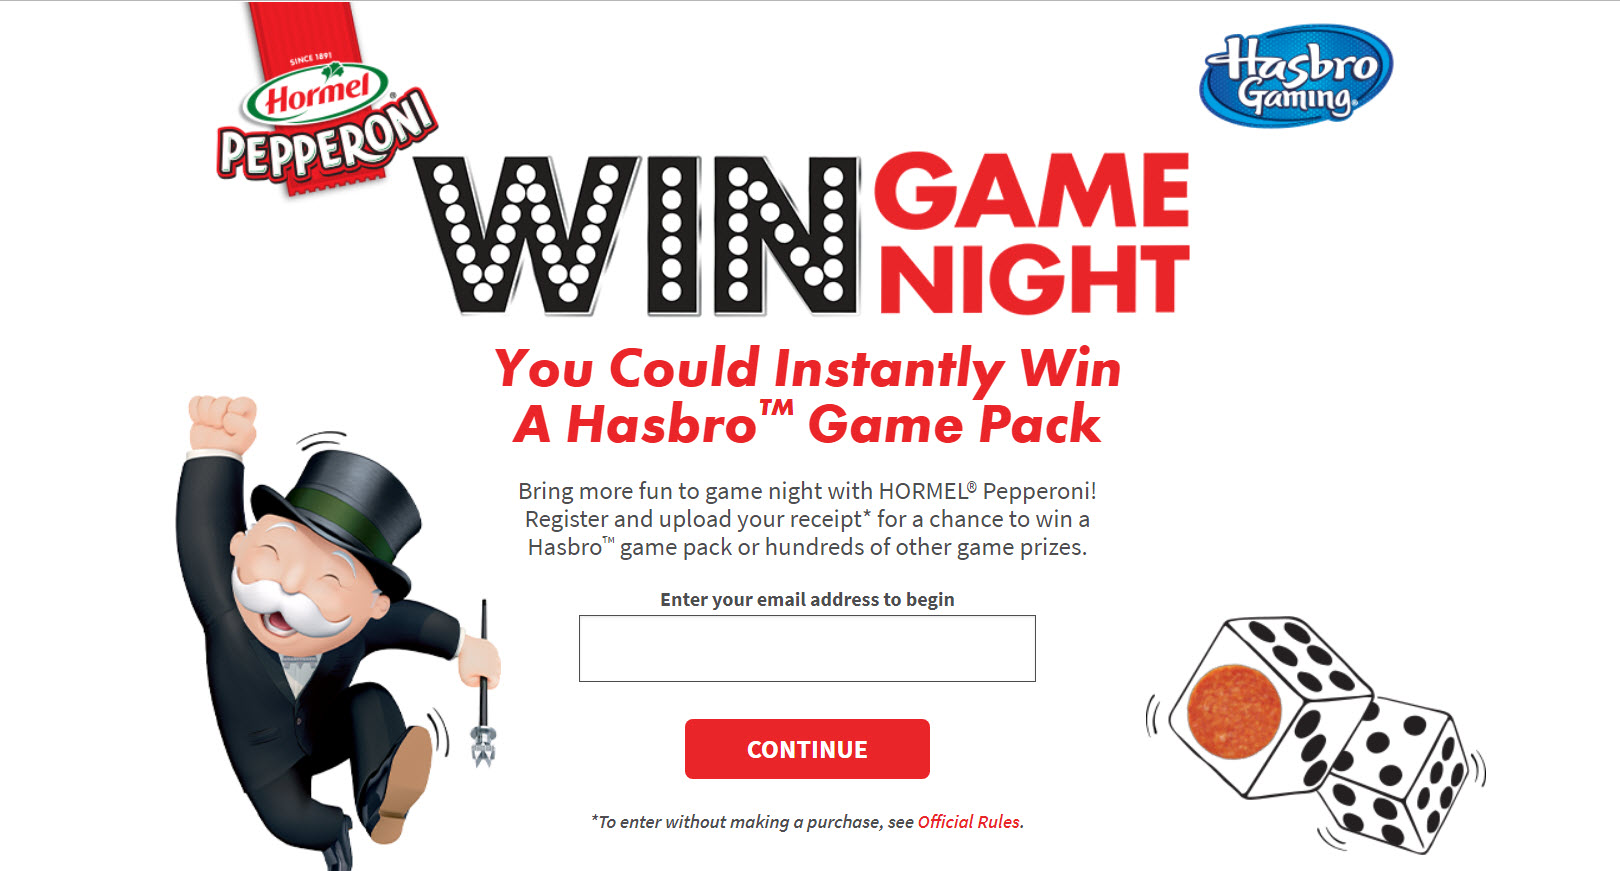 Play Hormel Pepperoni Win Game Night Instant Win Game the for a chance to win a Hasbro game pack or hundreds of other game prizes. Bring more fun to game night with HORMEL Pepperoni!